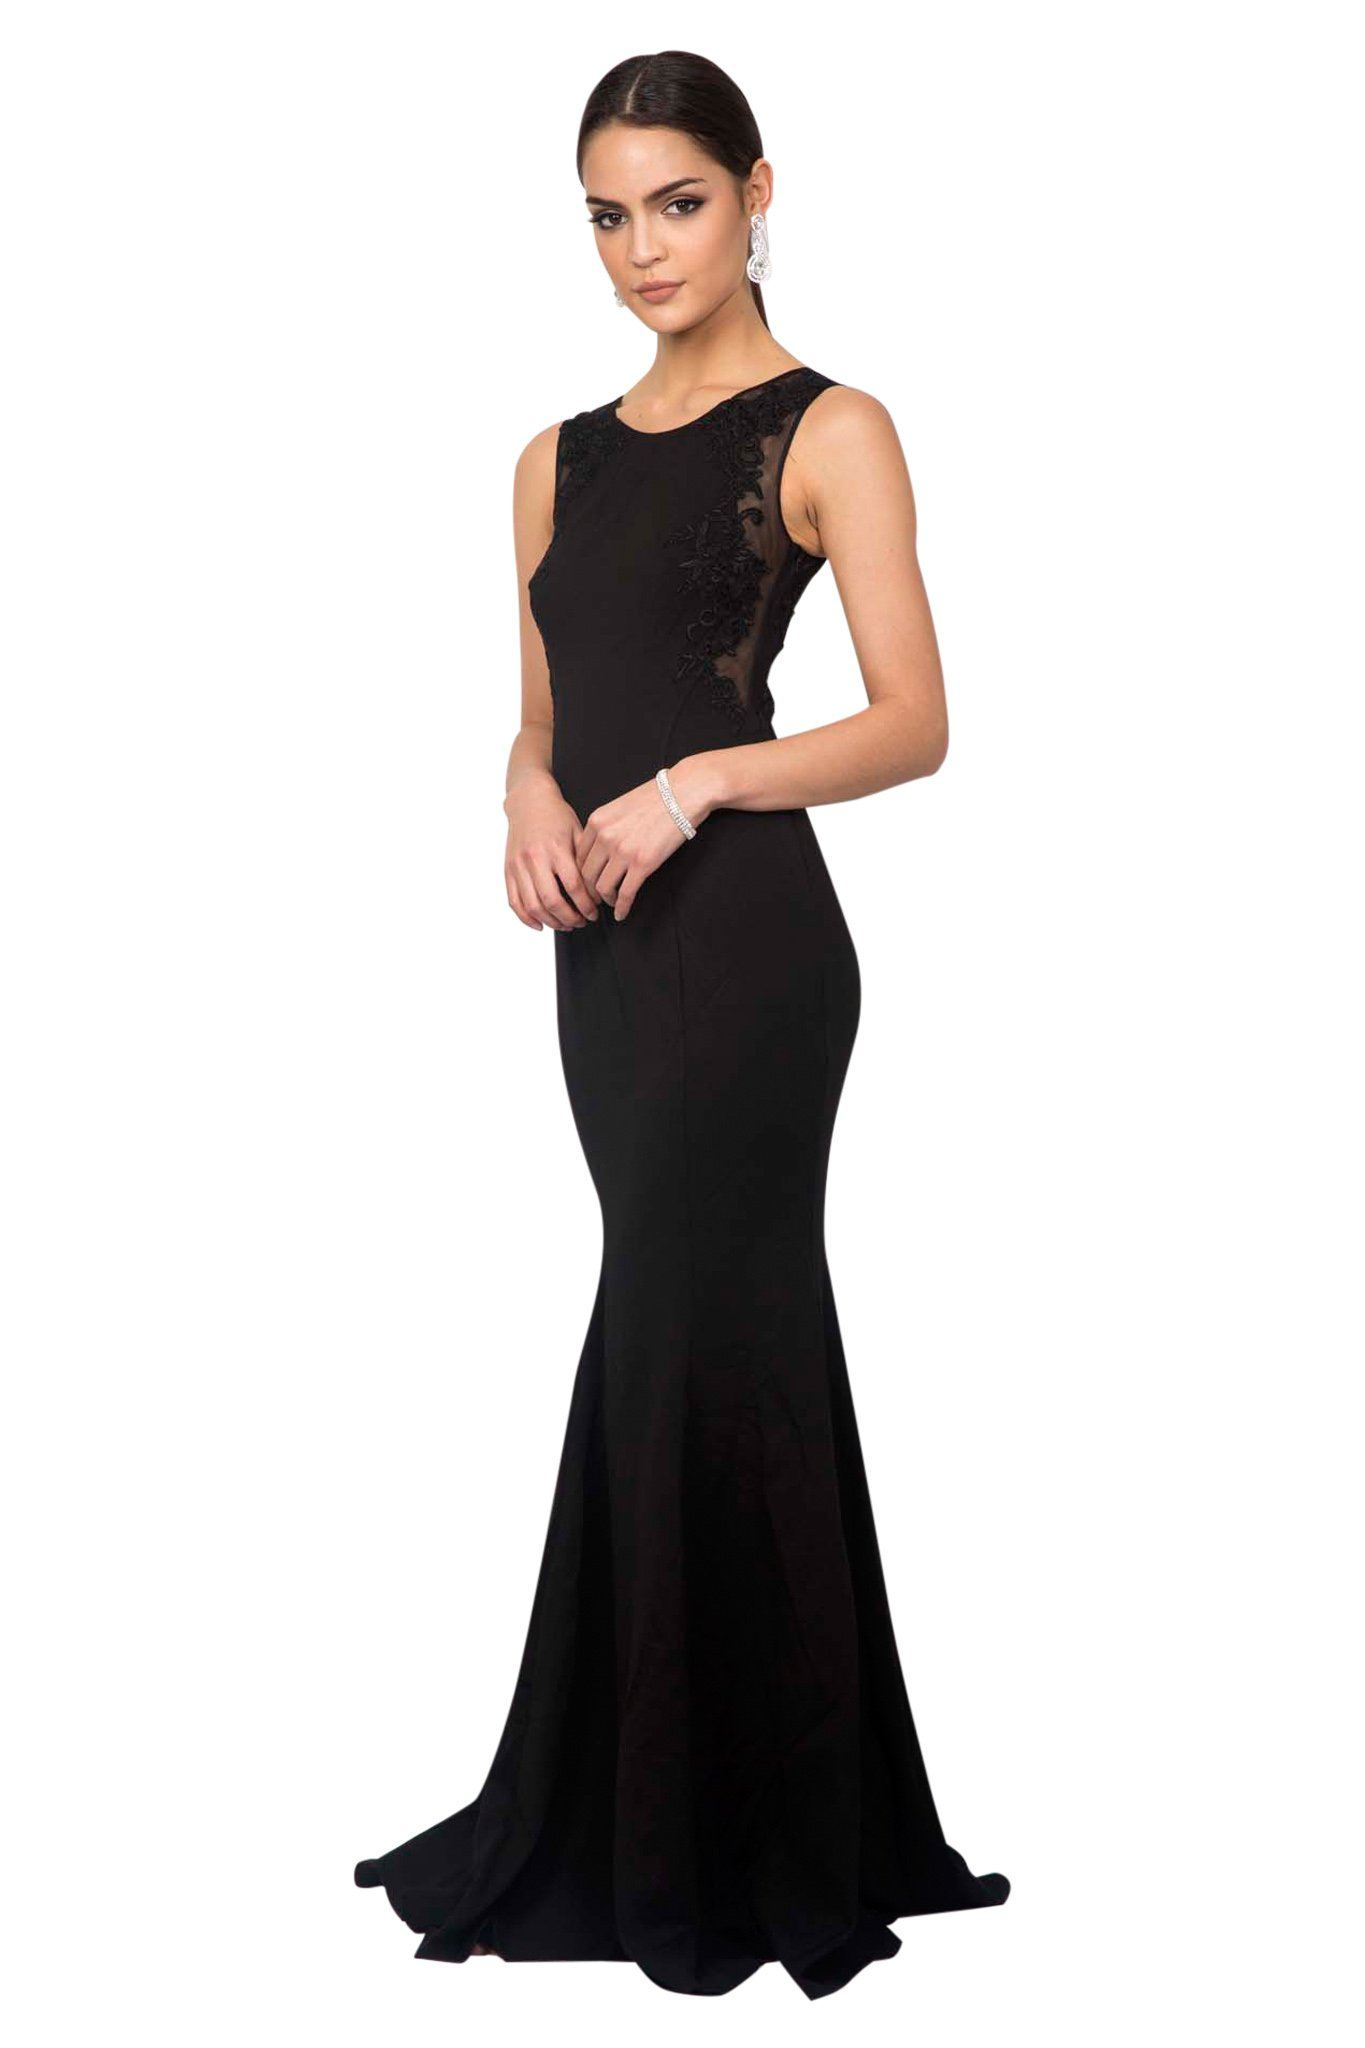 Black scoop neck sleeveless floor length maxi evening dress mermaid silhouette sheer lace details on the side and the back